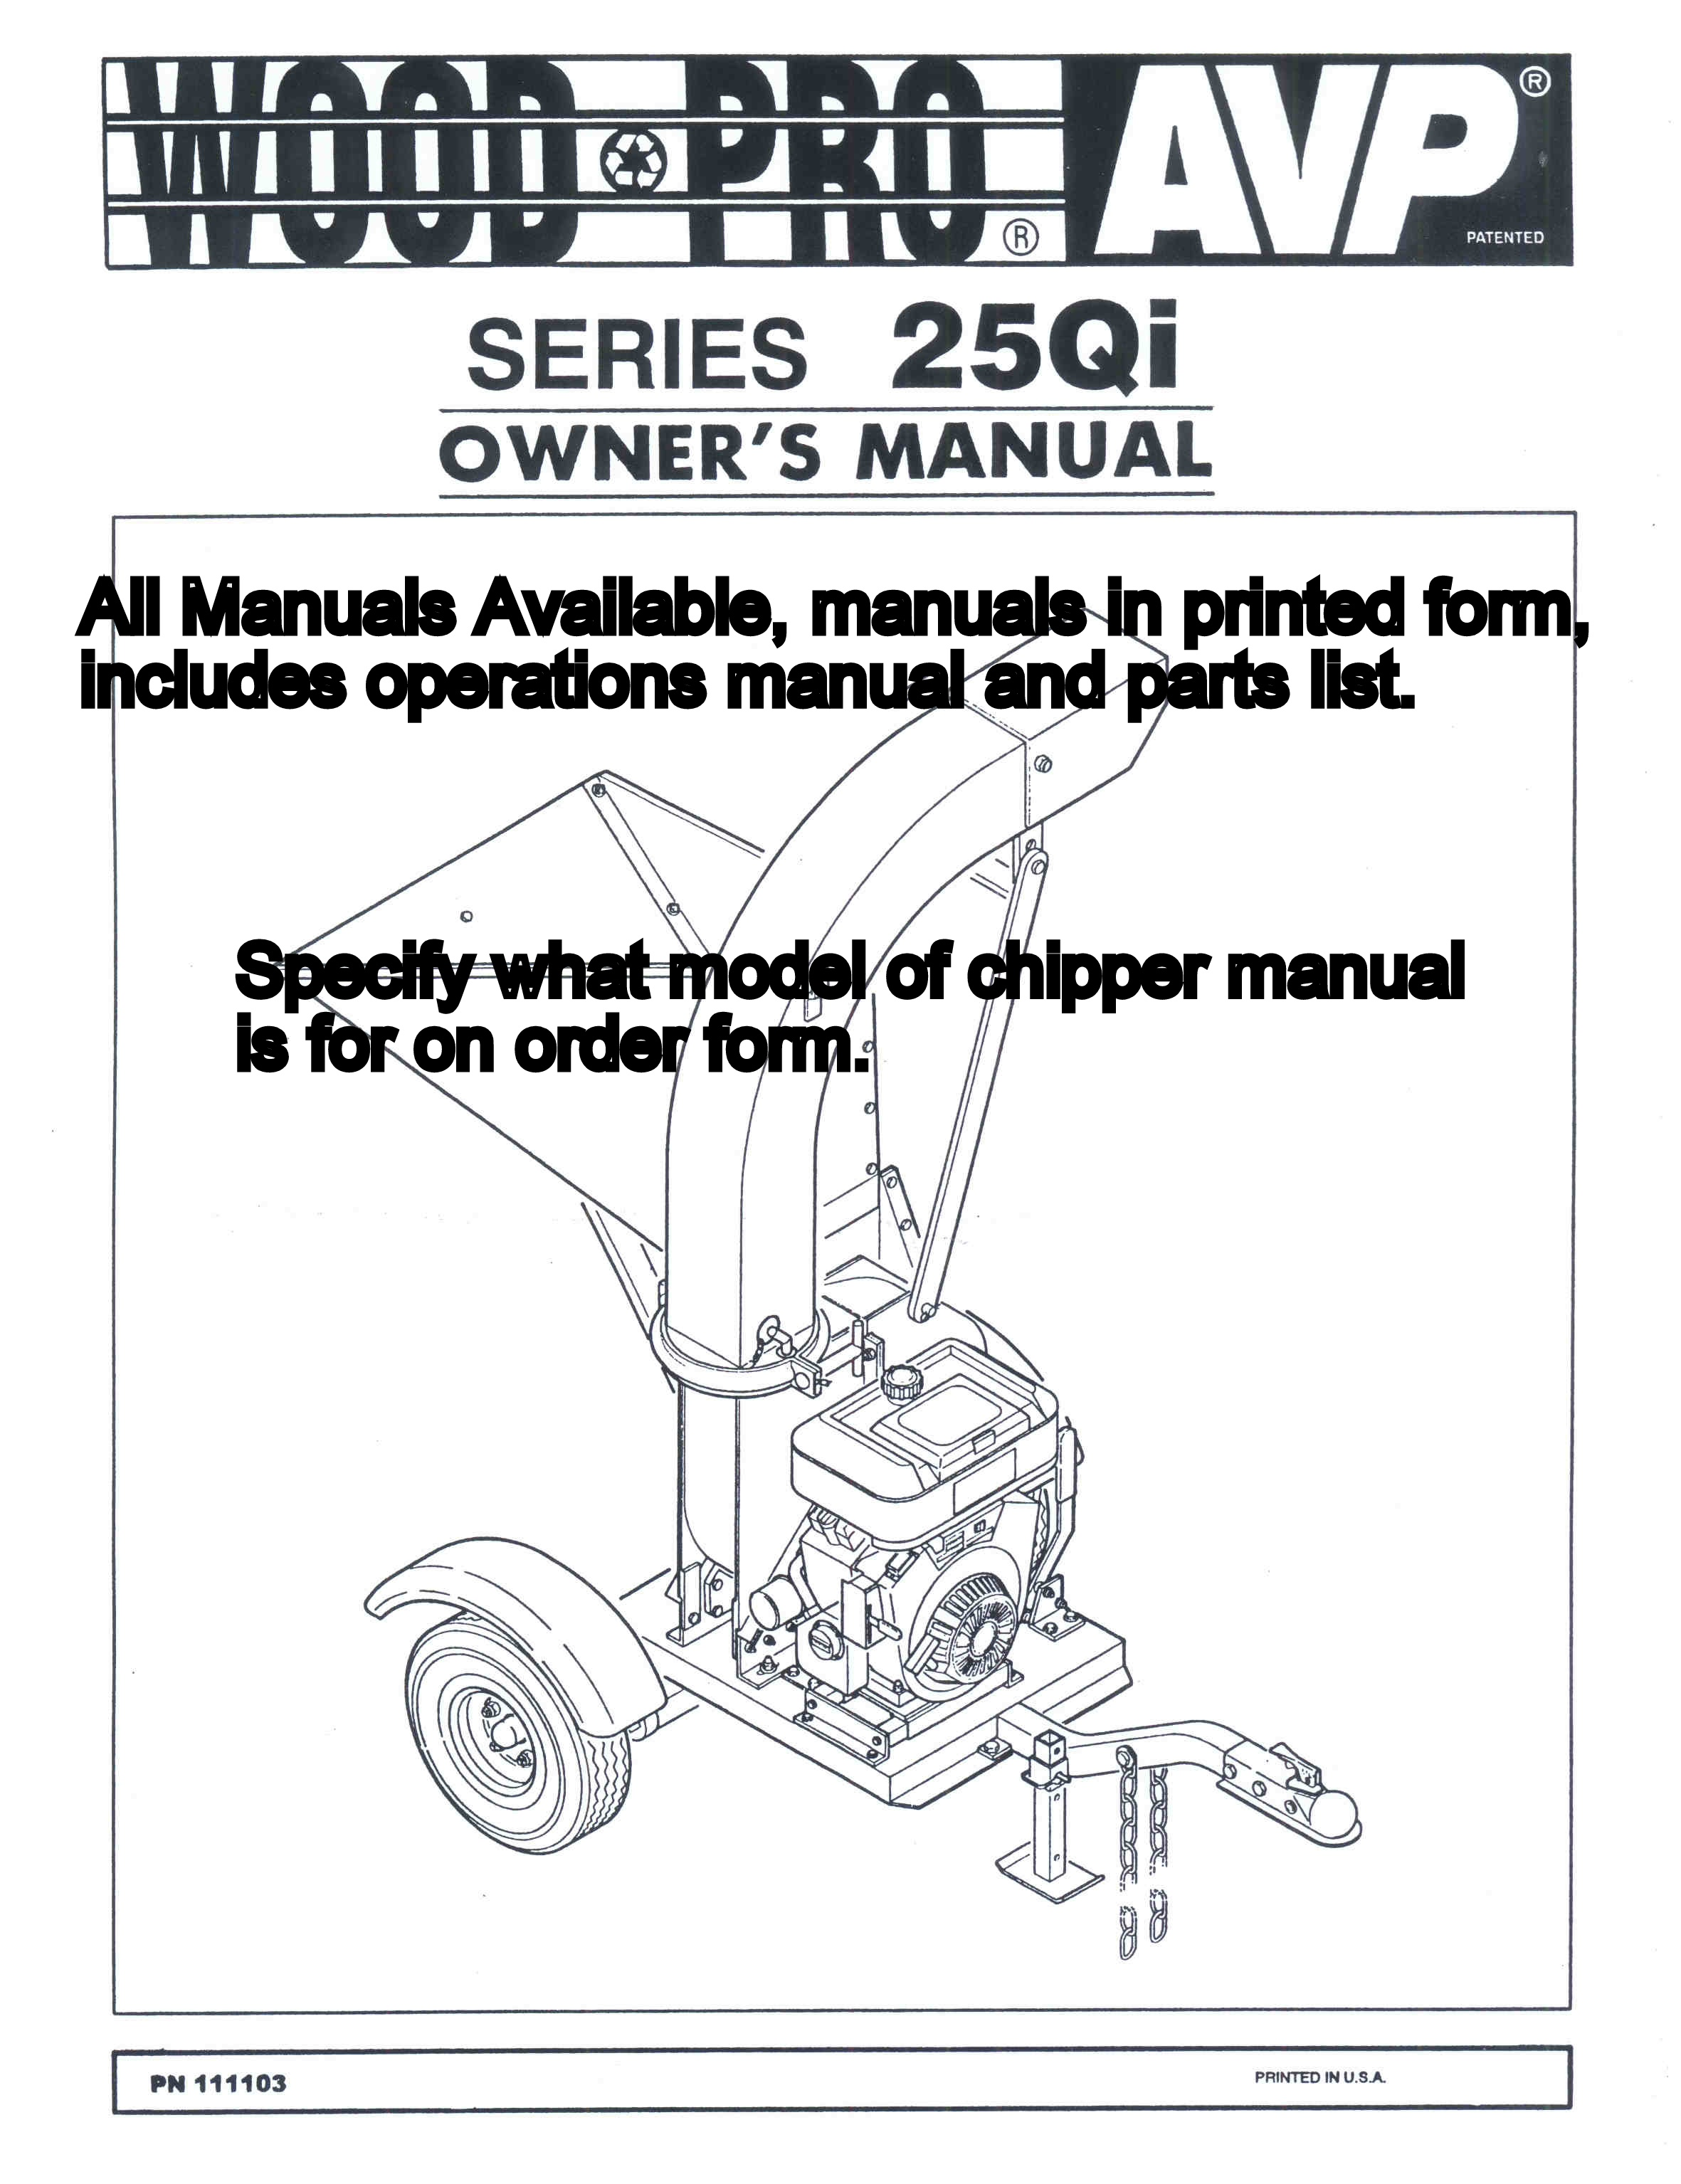 Operations And Parts Manual For Wood Pro Models